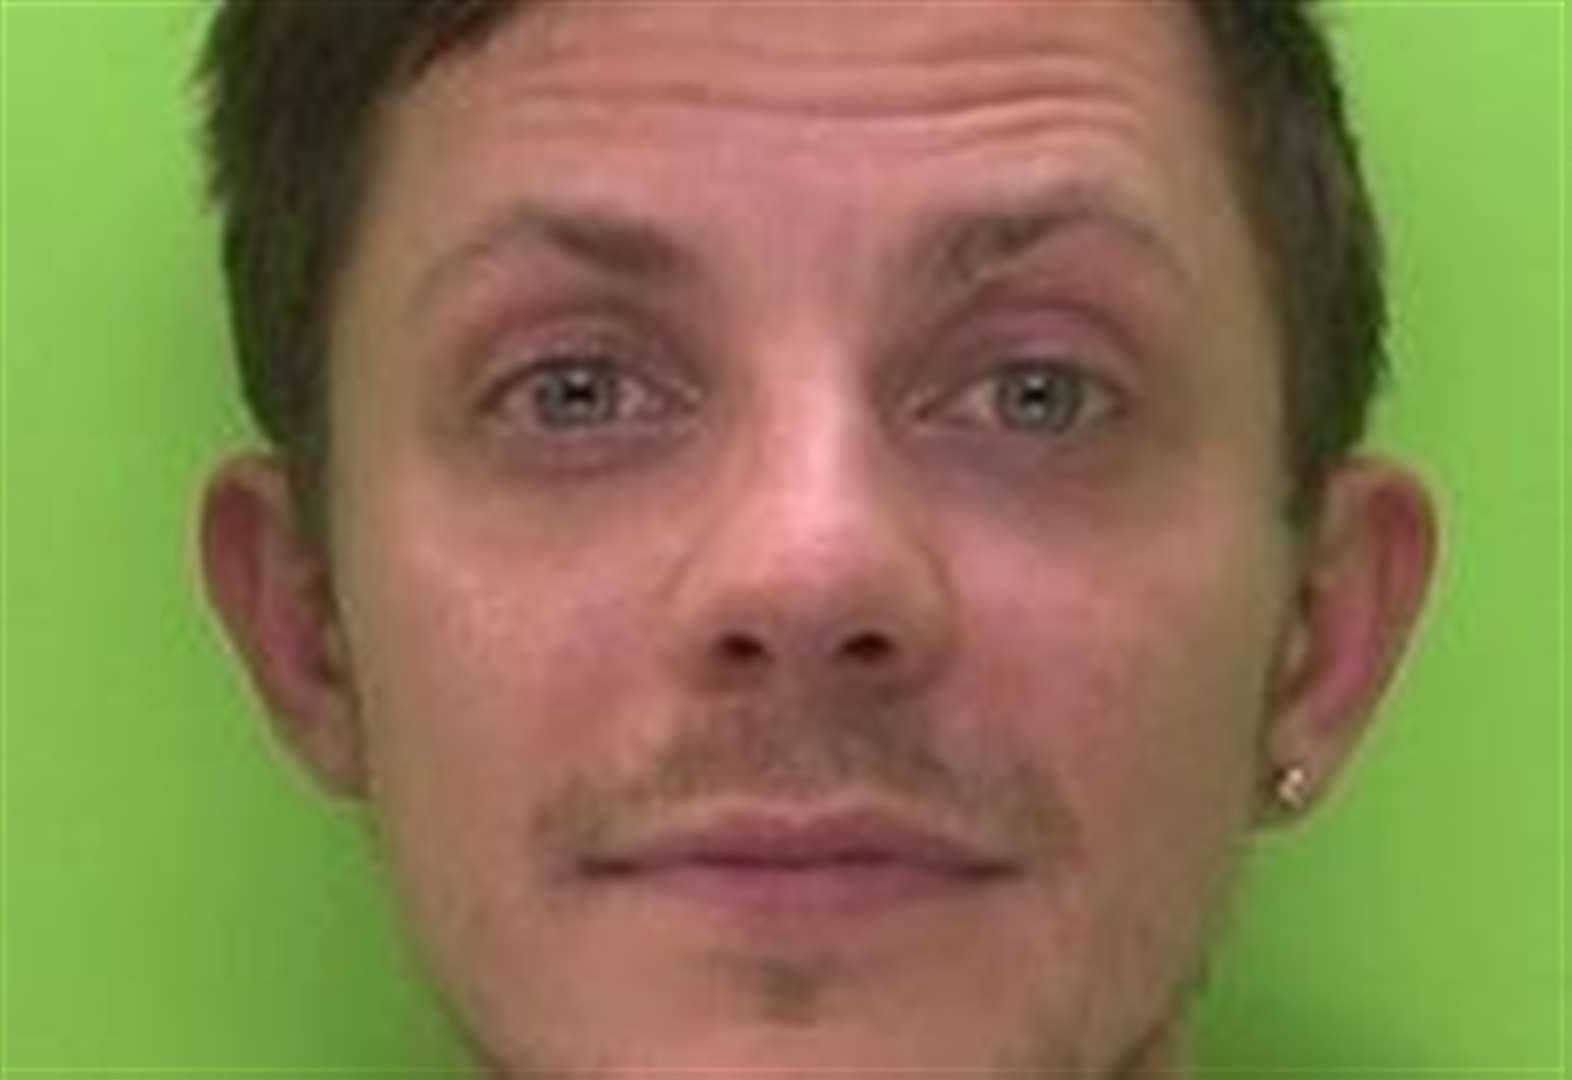 Fraudster, 29, expects 'substantial' time behind bars after posing as landlord 18 times